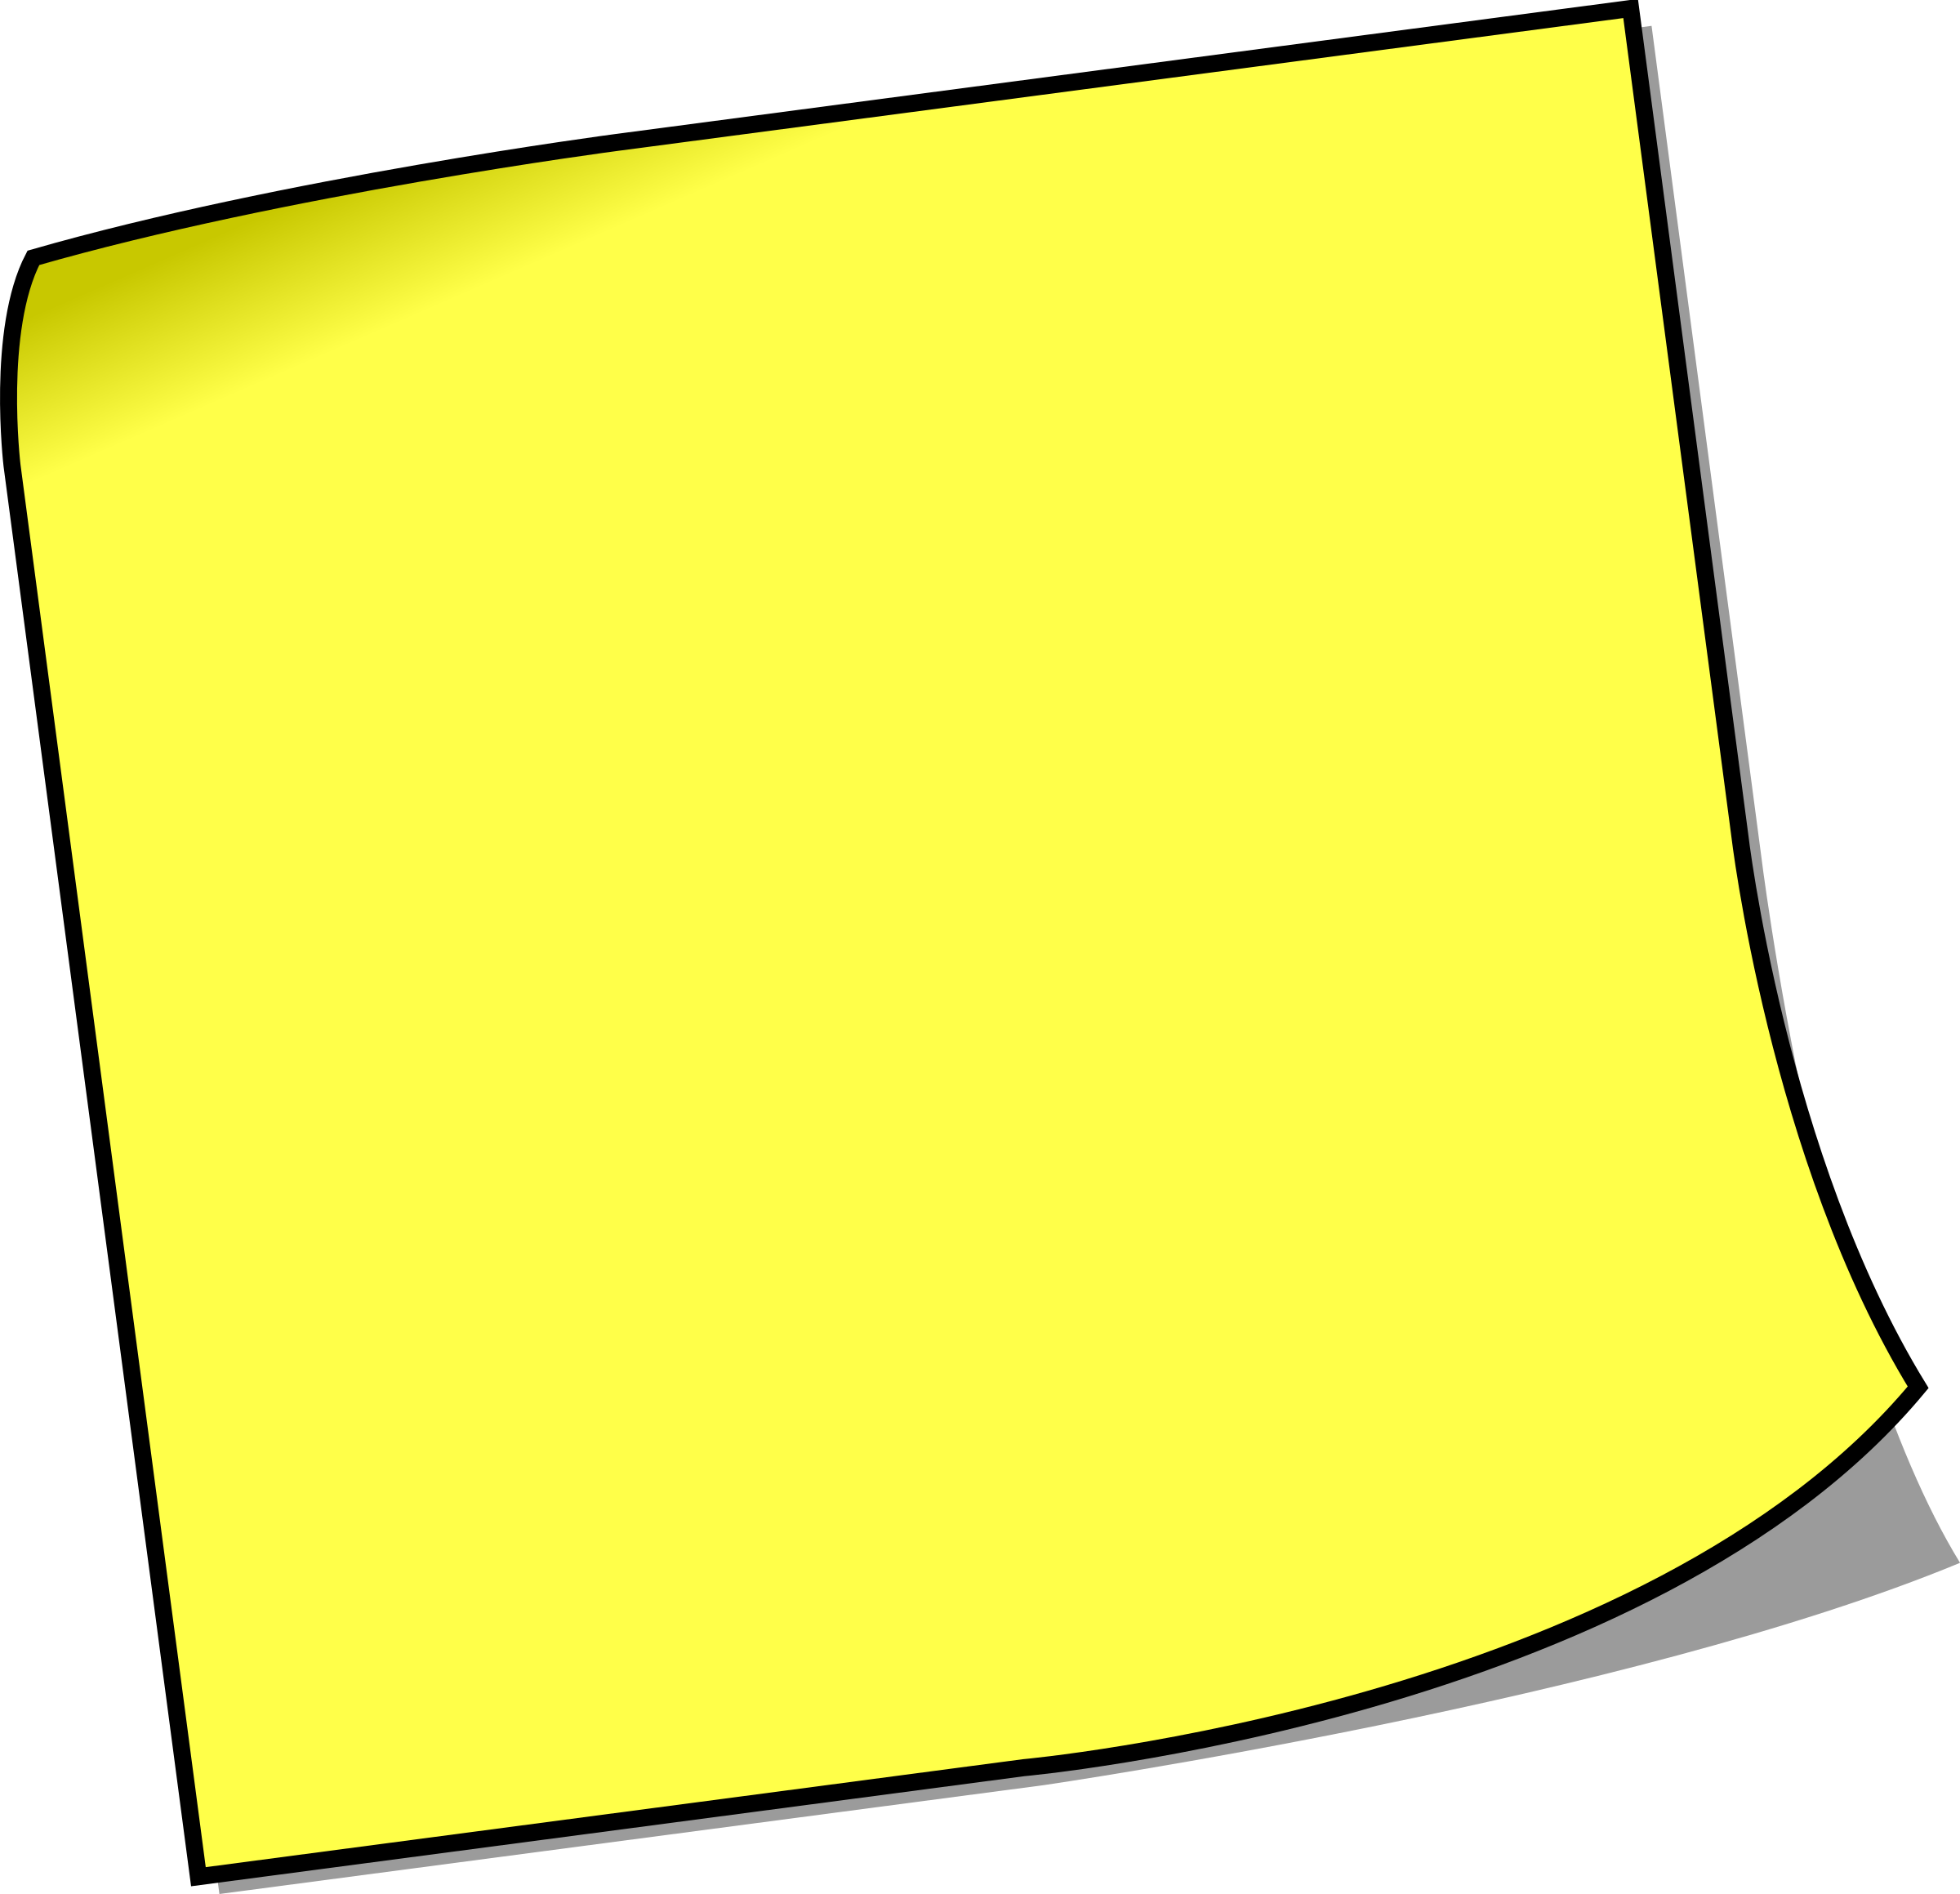 Blank sticky note by lemmling